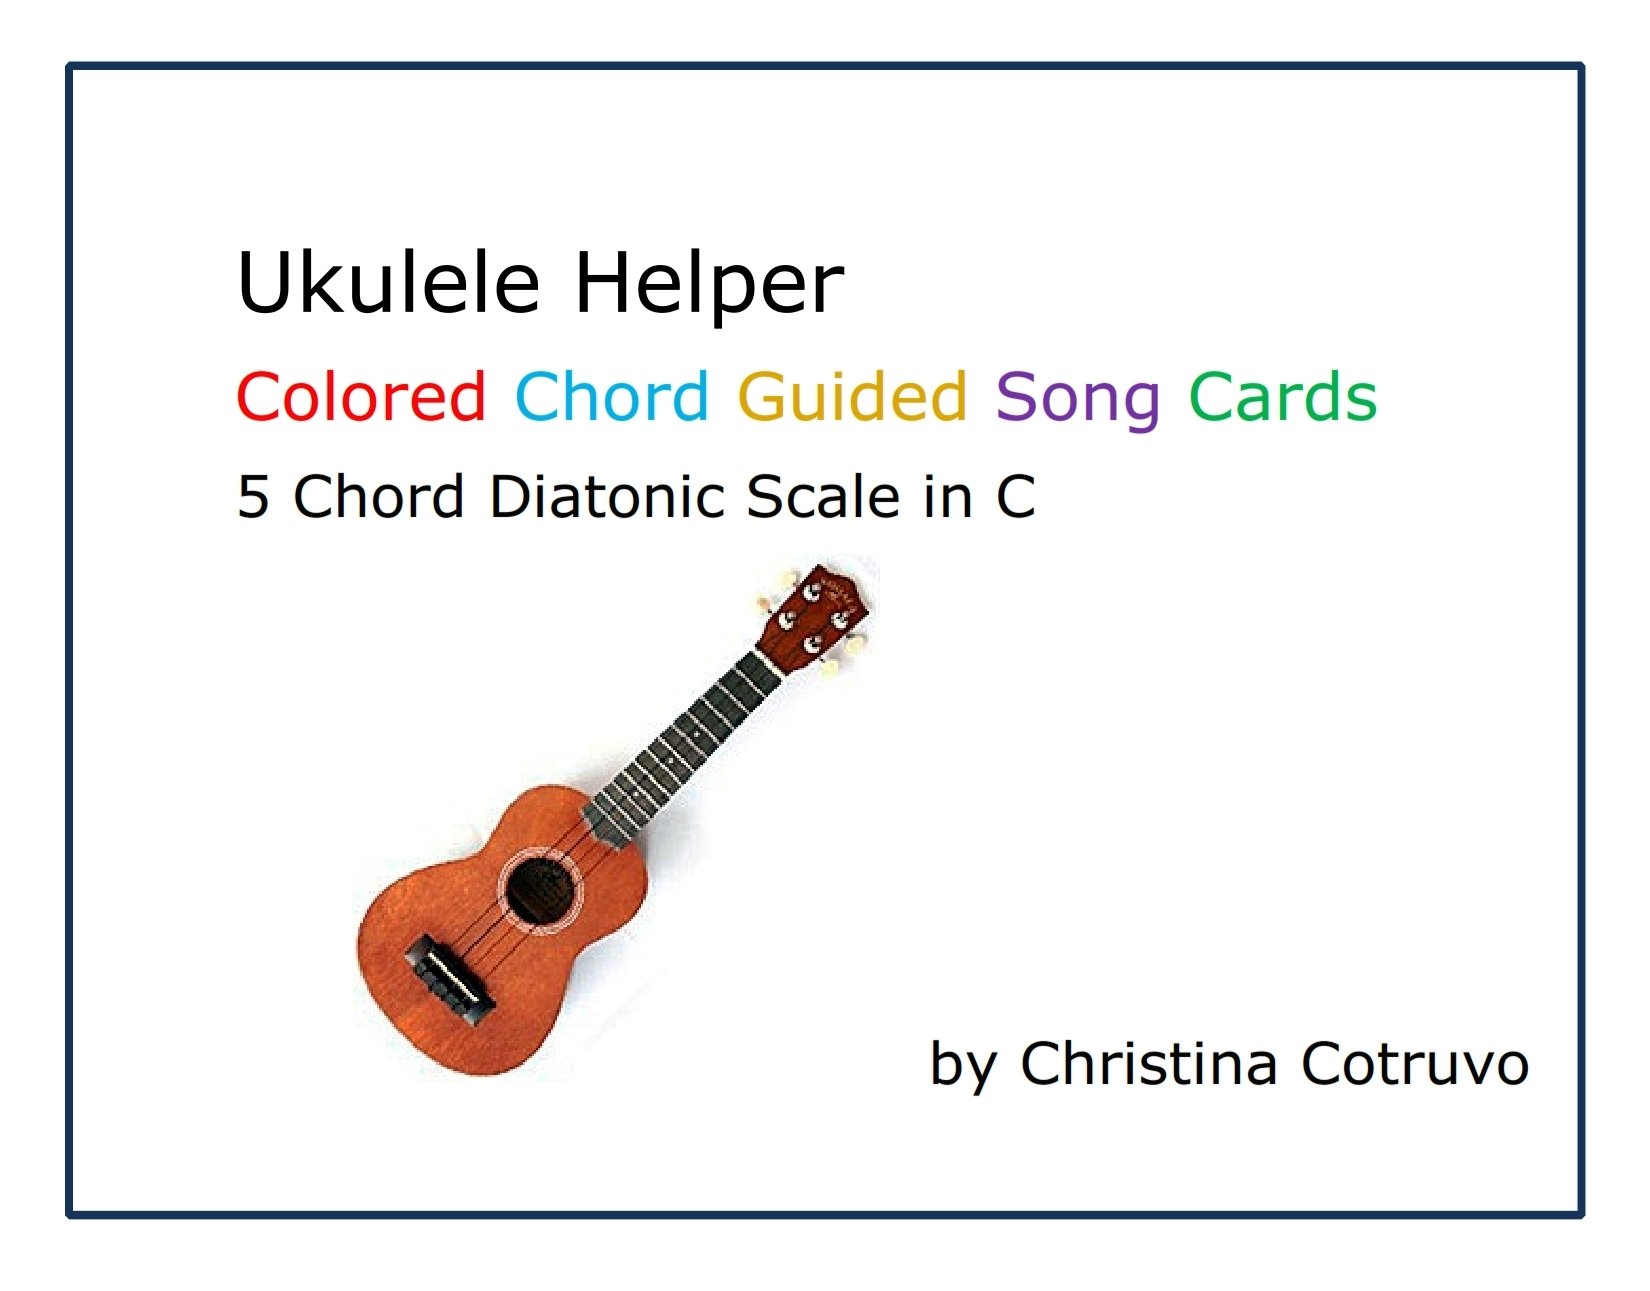 Ukulele Helper Colored Chord Guided Song Cards Christina Cotruvo